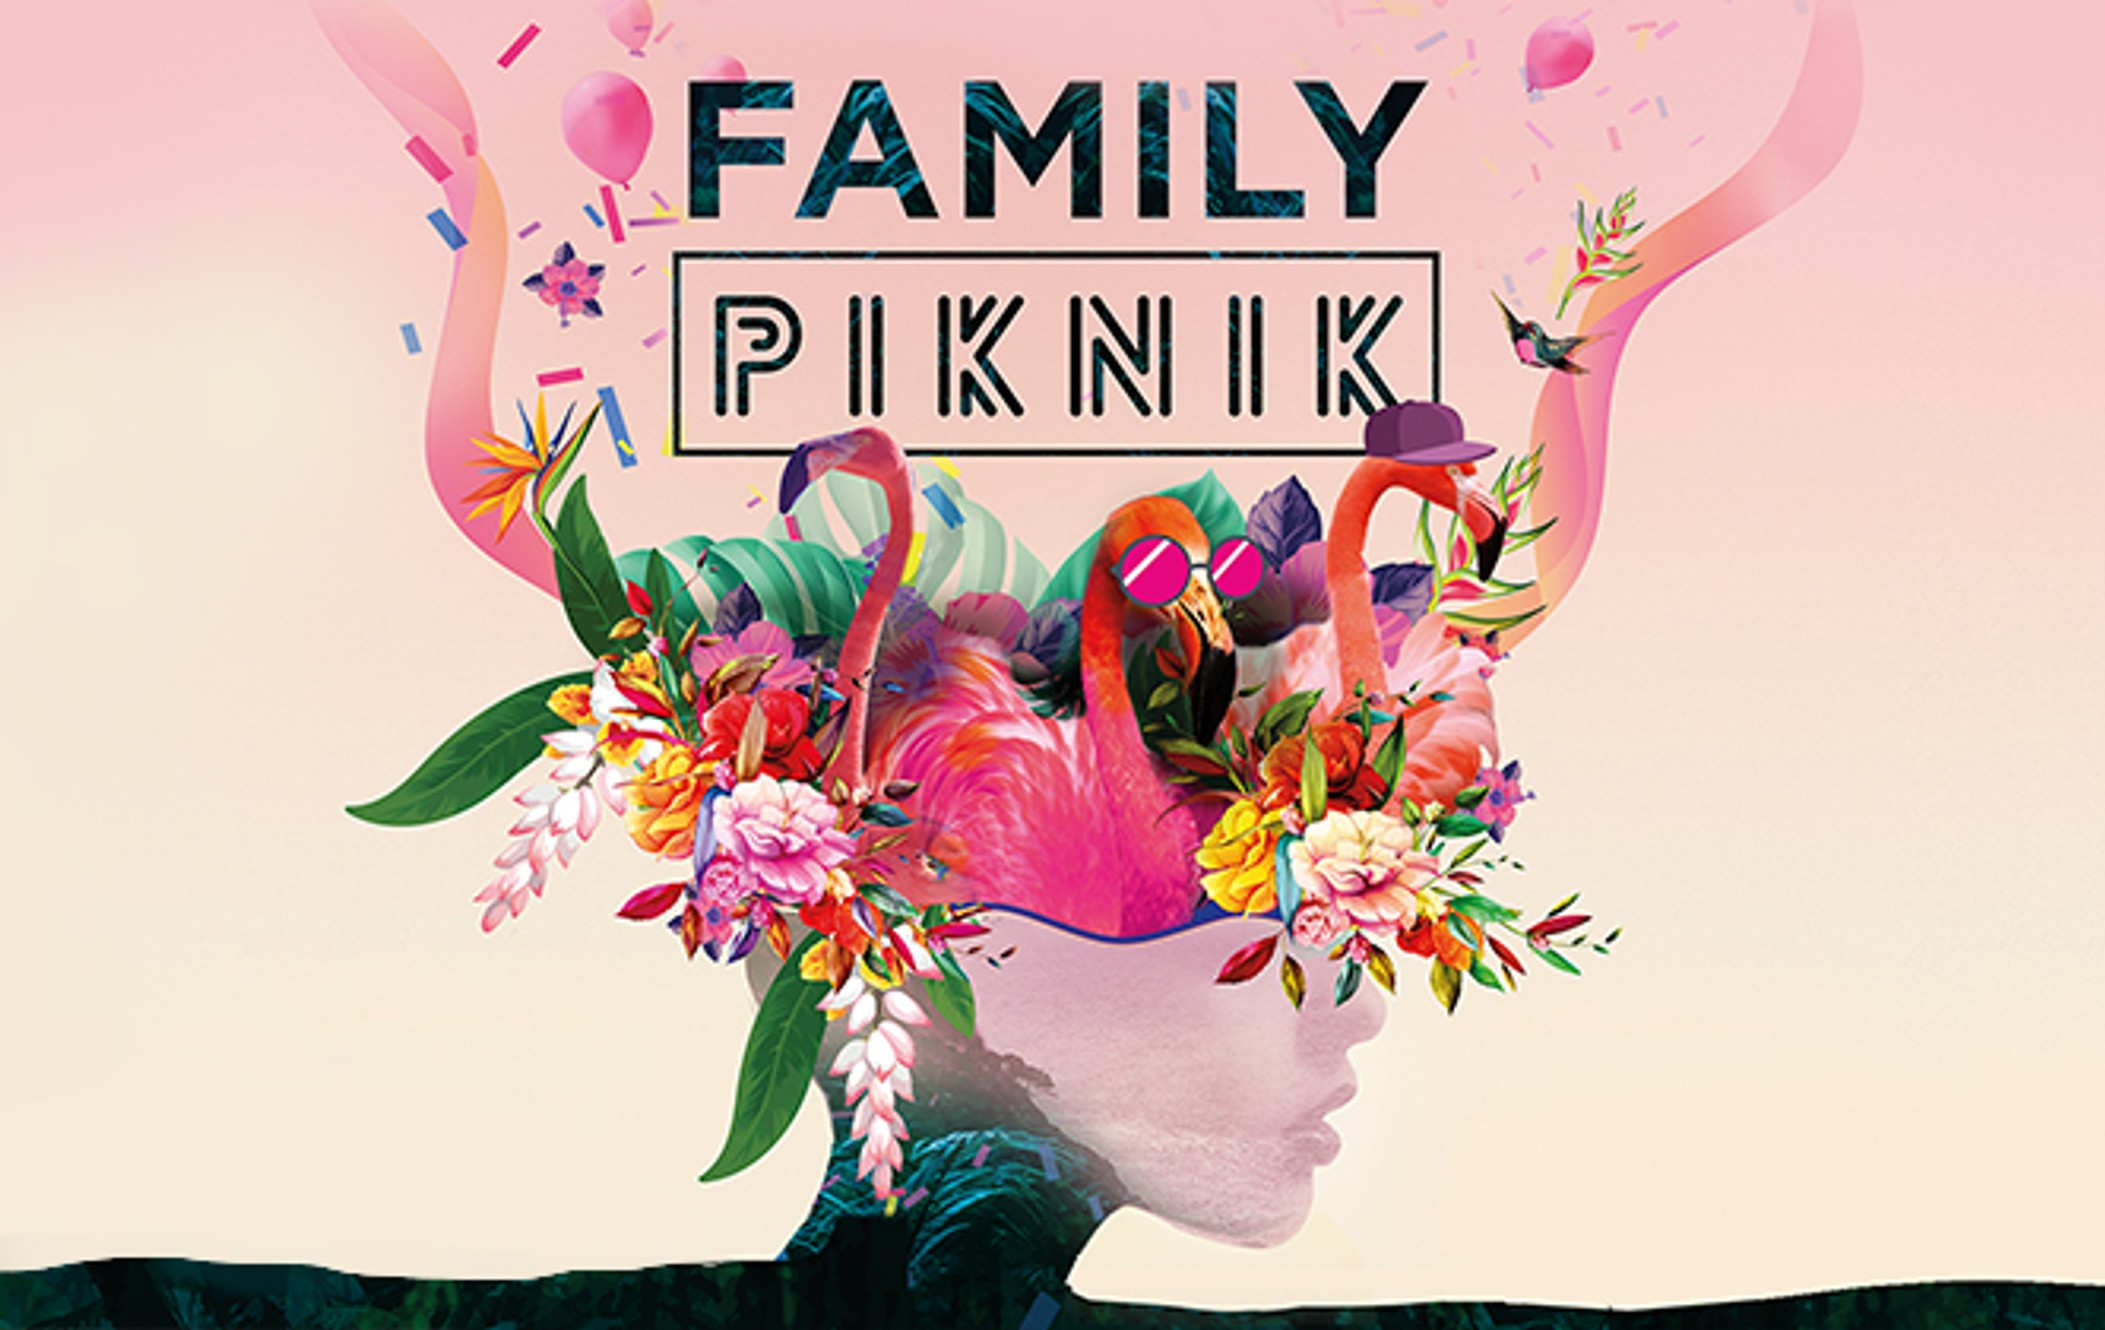 Family Piknik 2020 is cancelled, or rather postponed